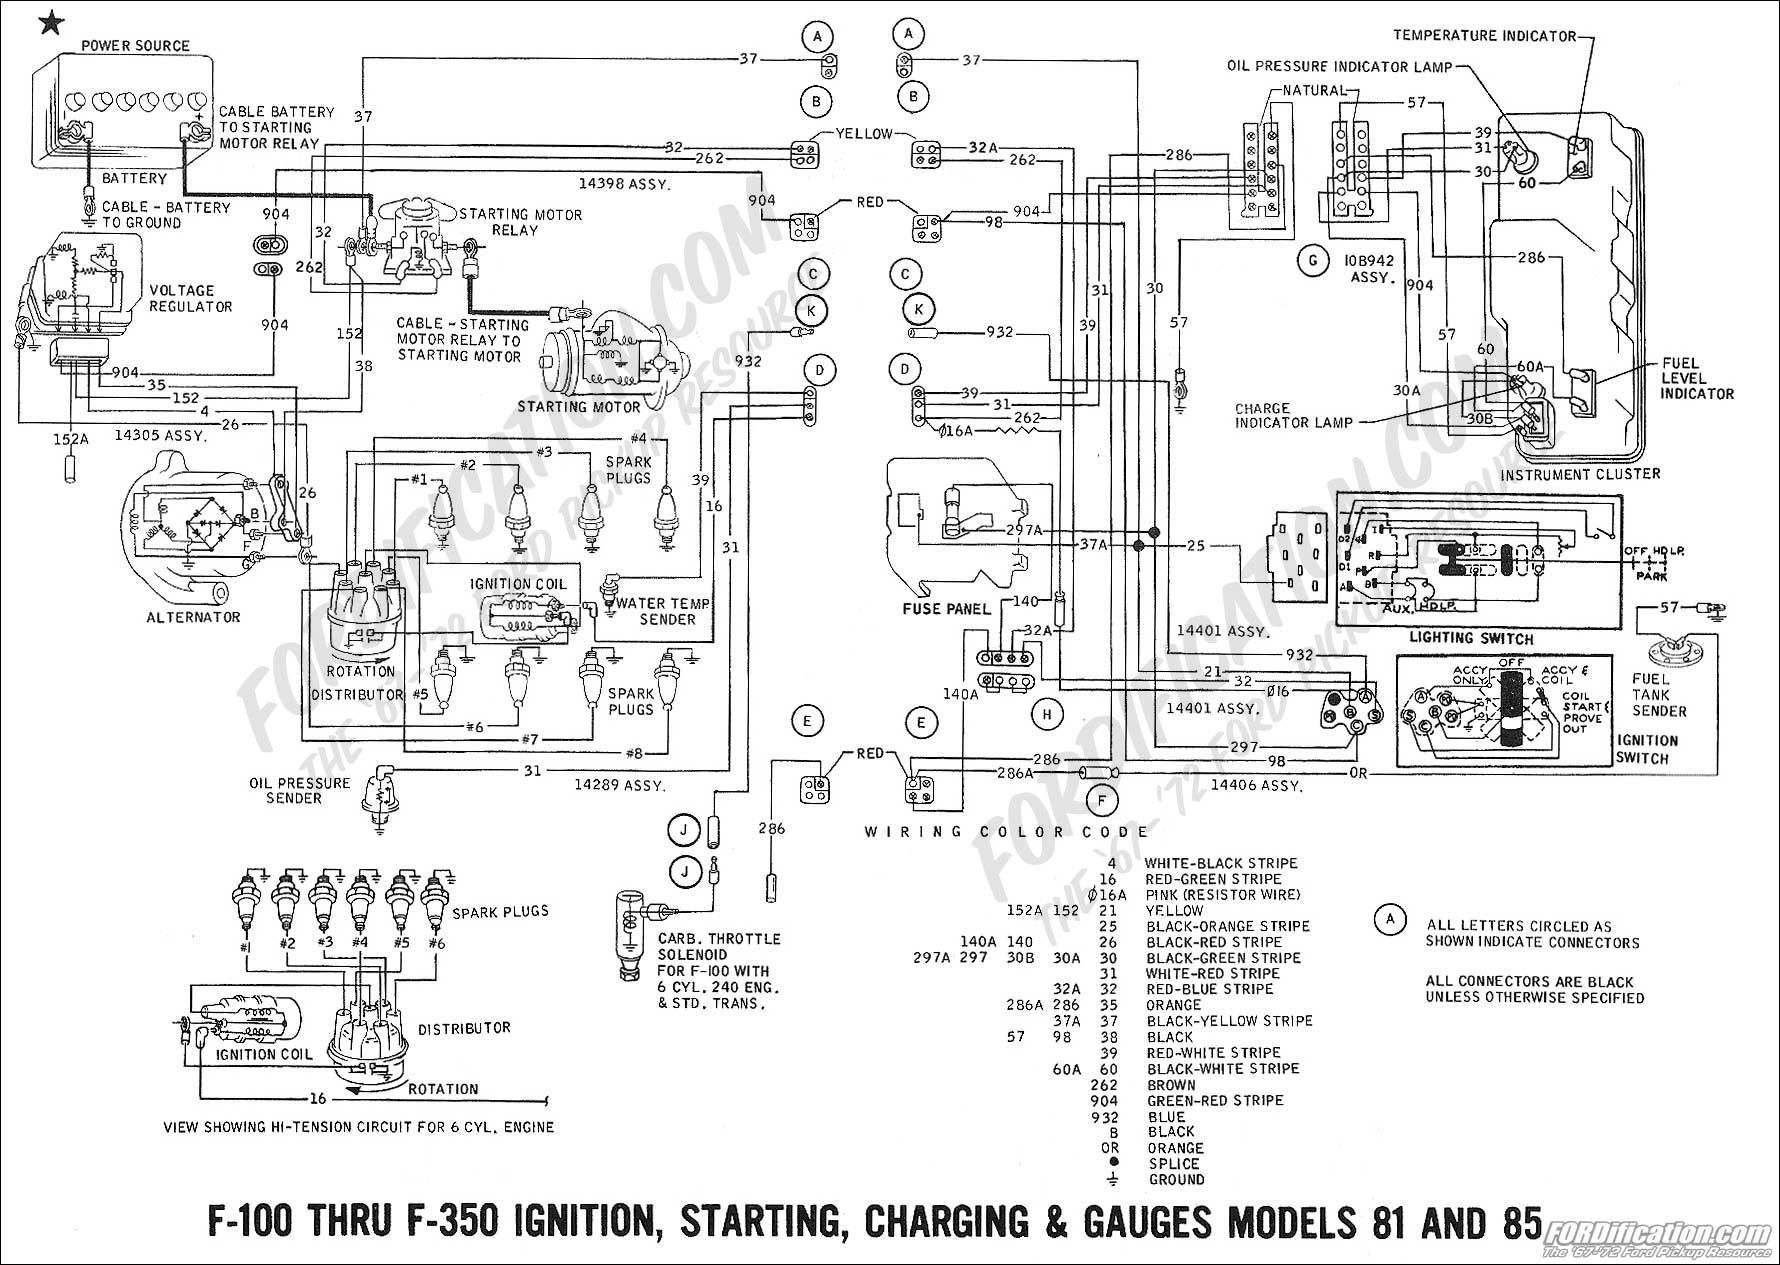 hight resolution of 1986 ford f800 wiring diagram wiring diagram new 1986 ford f800 wiring diagram